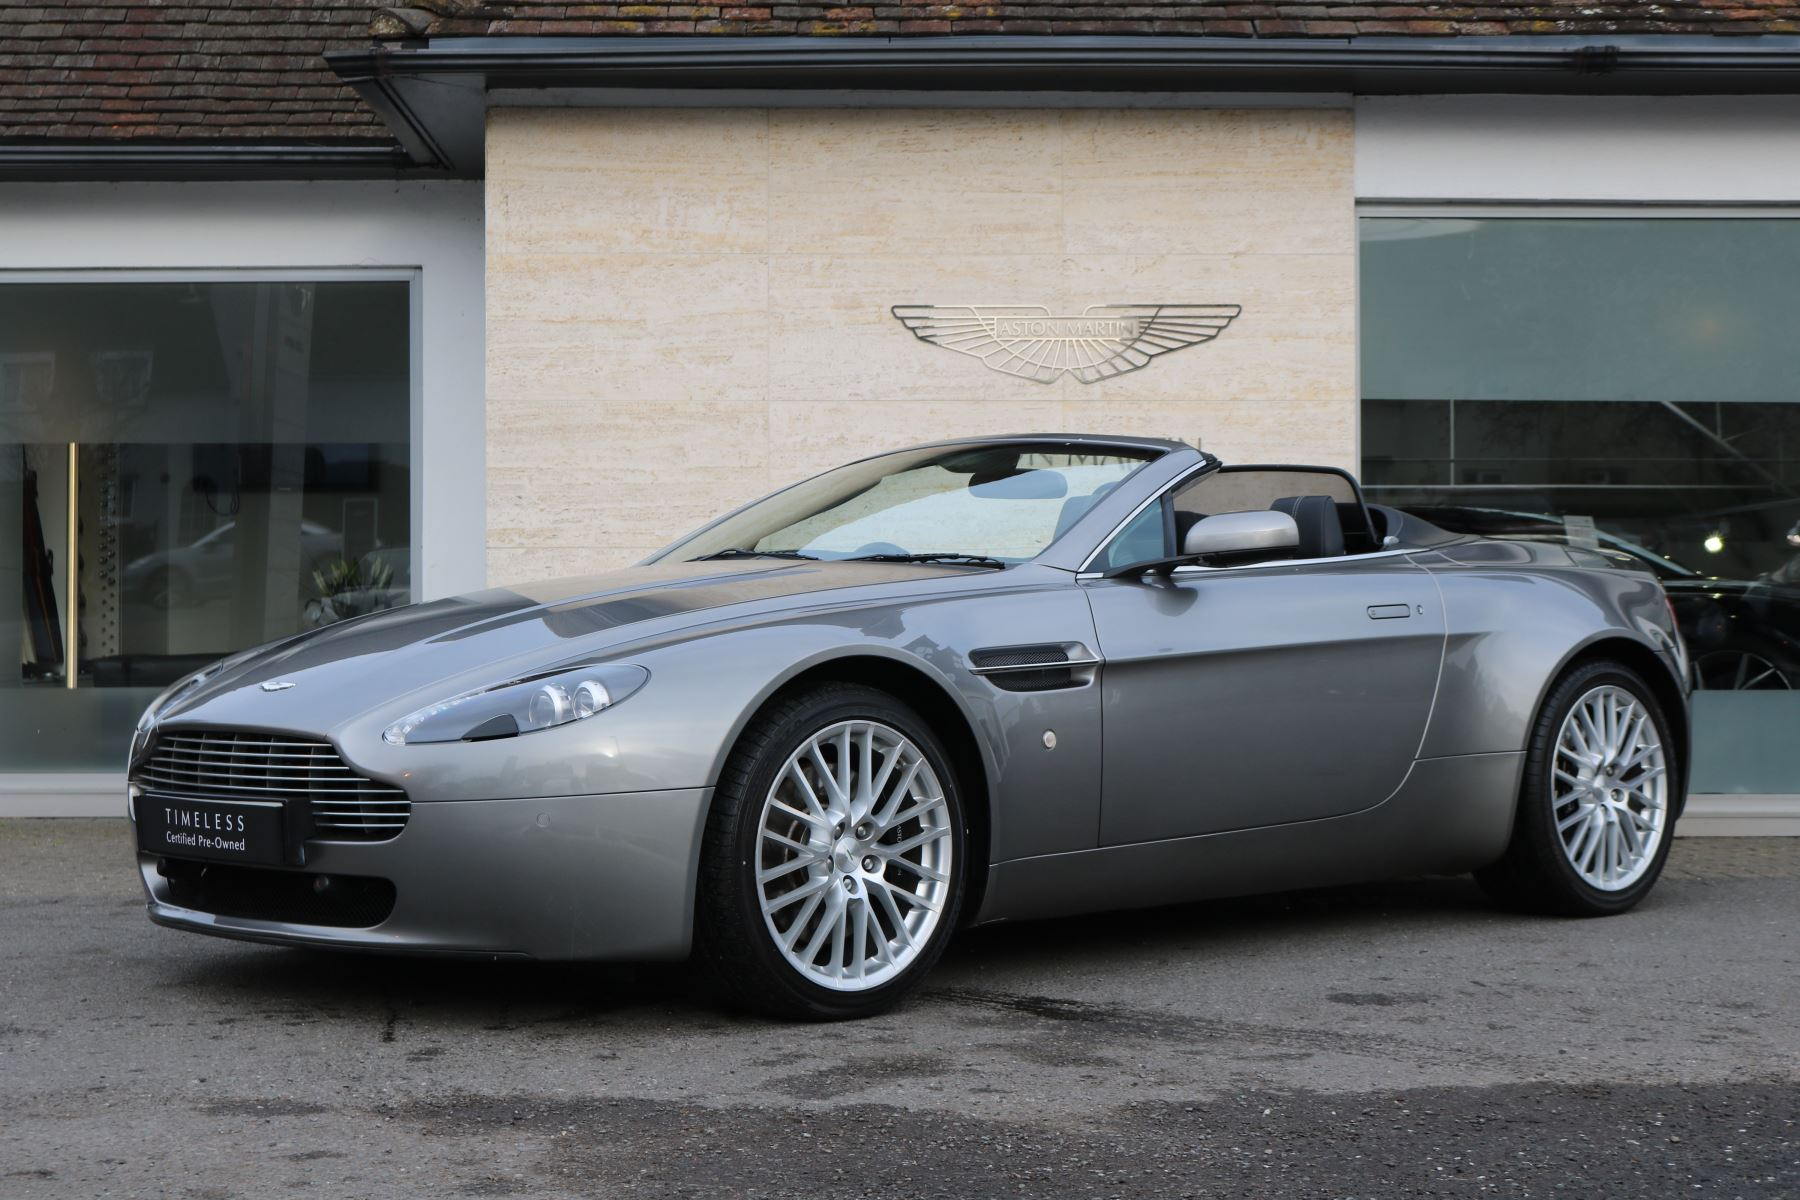 used - aston martin cars for sale | grange